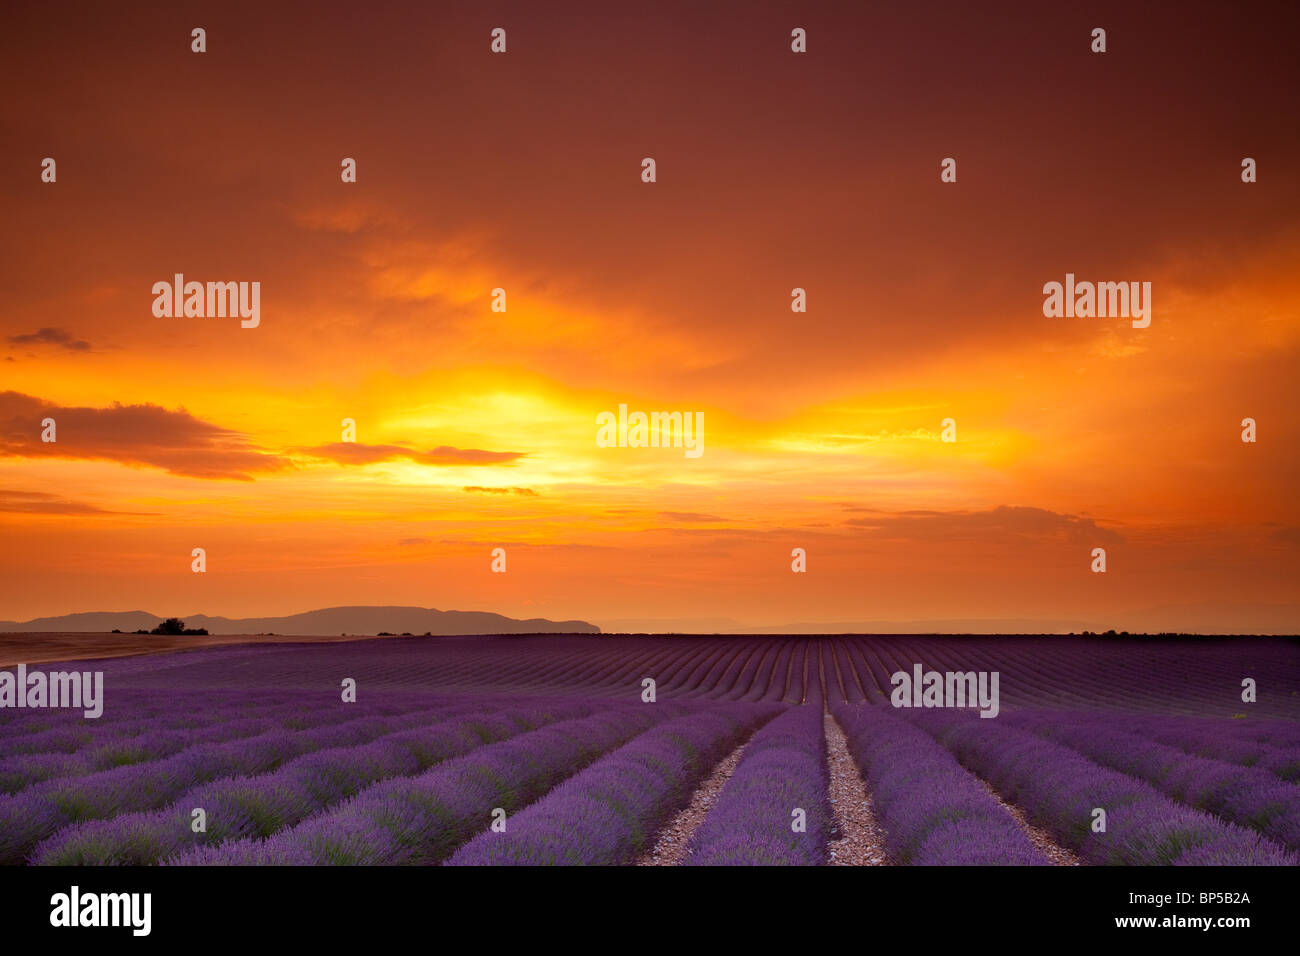 Colors of Sunset along the Valensole Plateau, Provence France - Stock Image